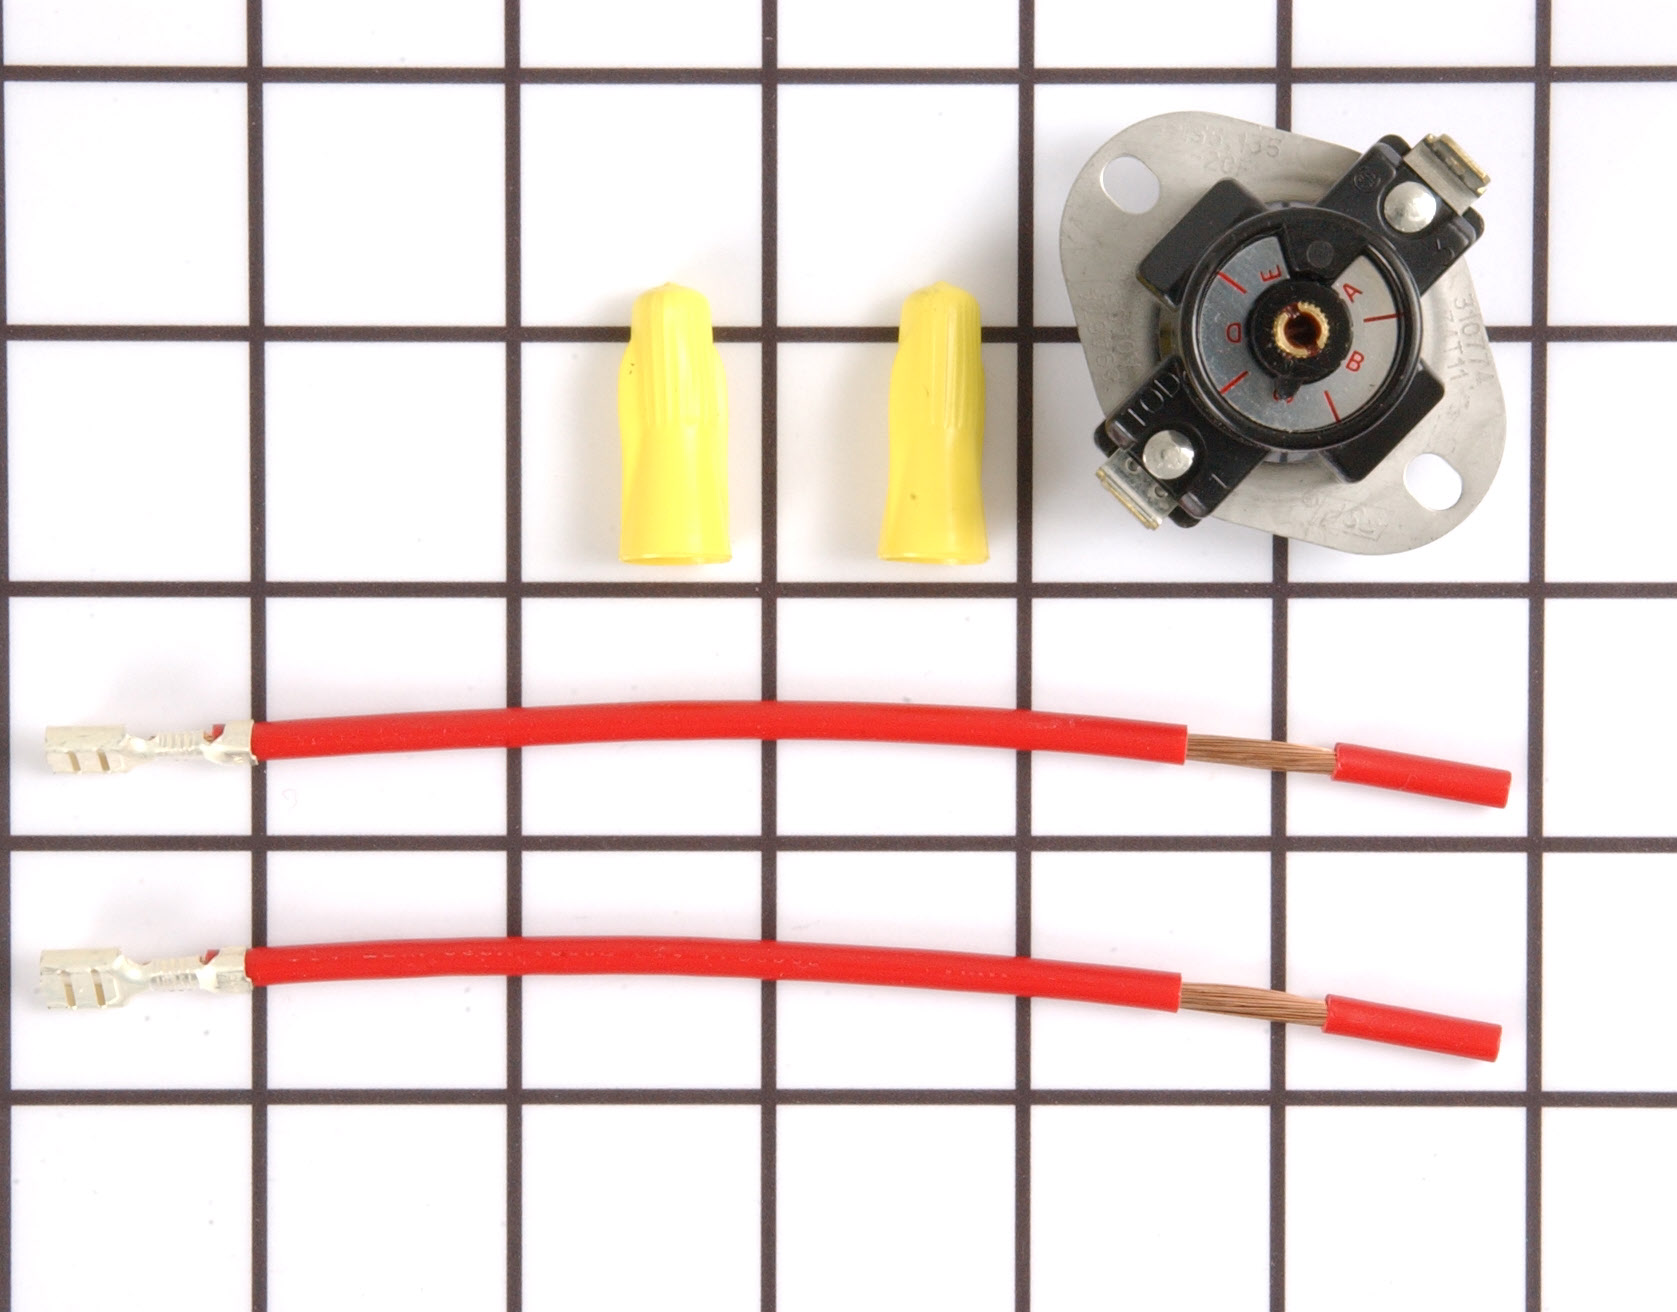 WP694674 Inglis Dryer Part -Cycling Thermostat